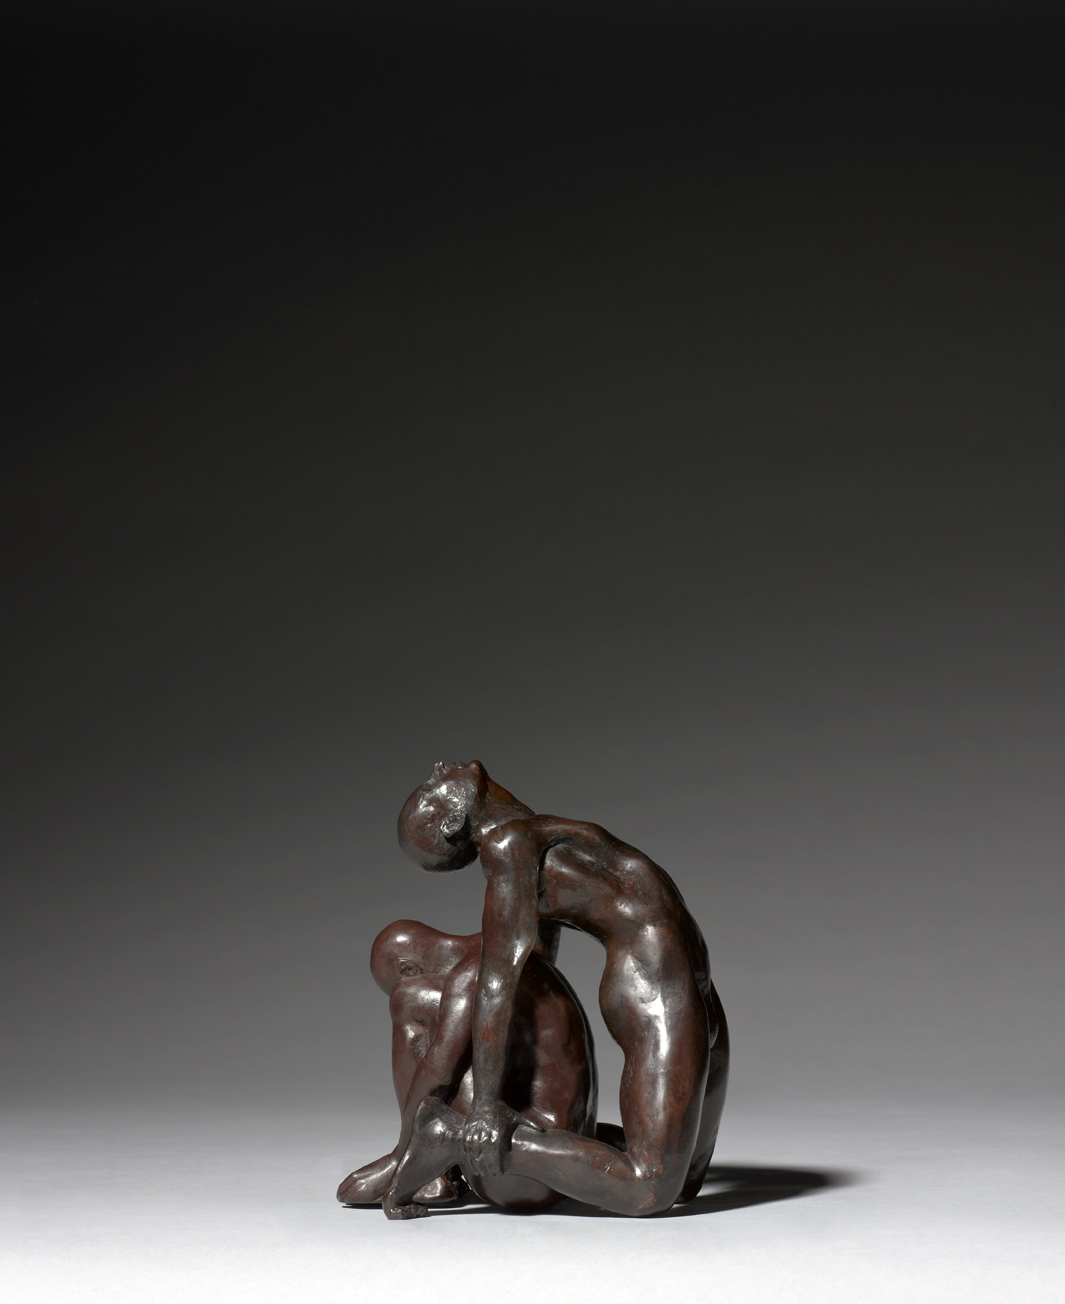 Annie_Tempest_Dichotomy_Bronze_Edition_of_9_16x11x14cm